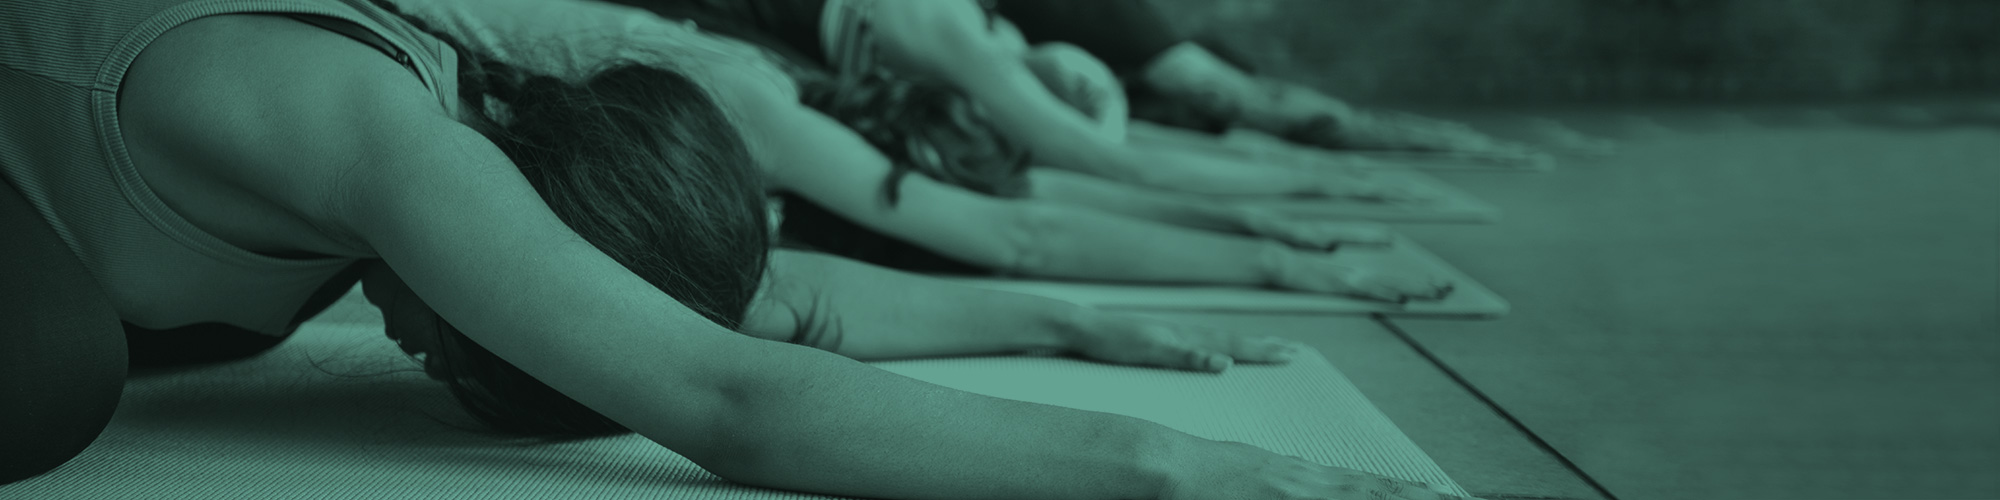 Pilates classes in Manchester city centre taught by physios at Total Restore